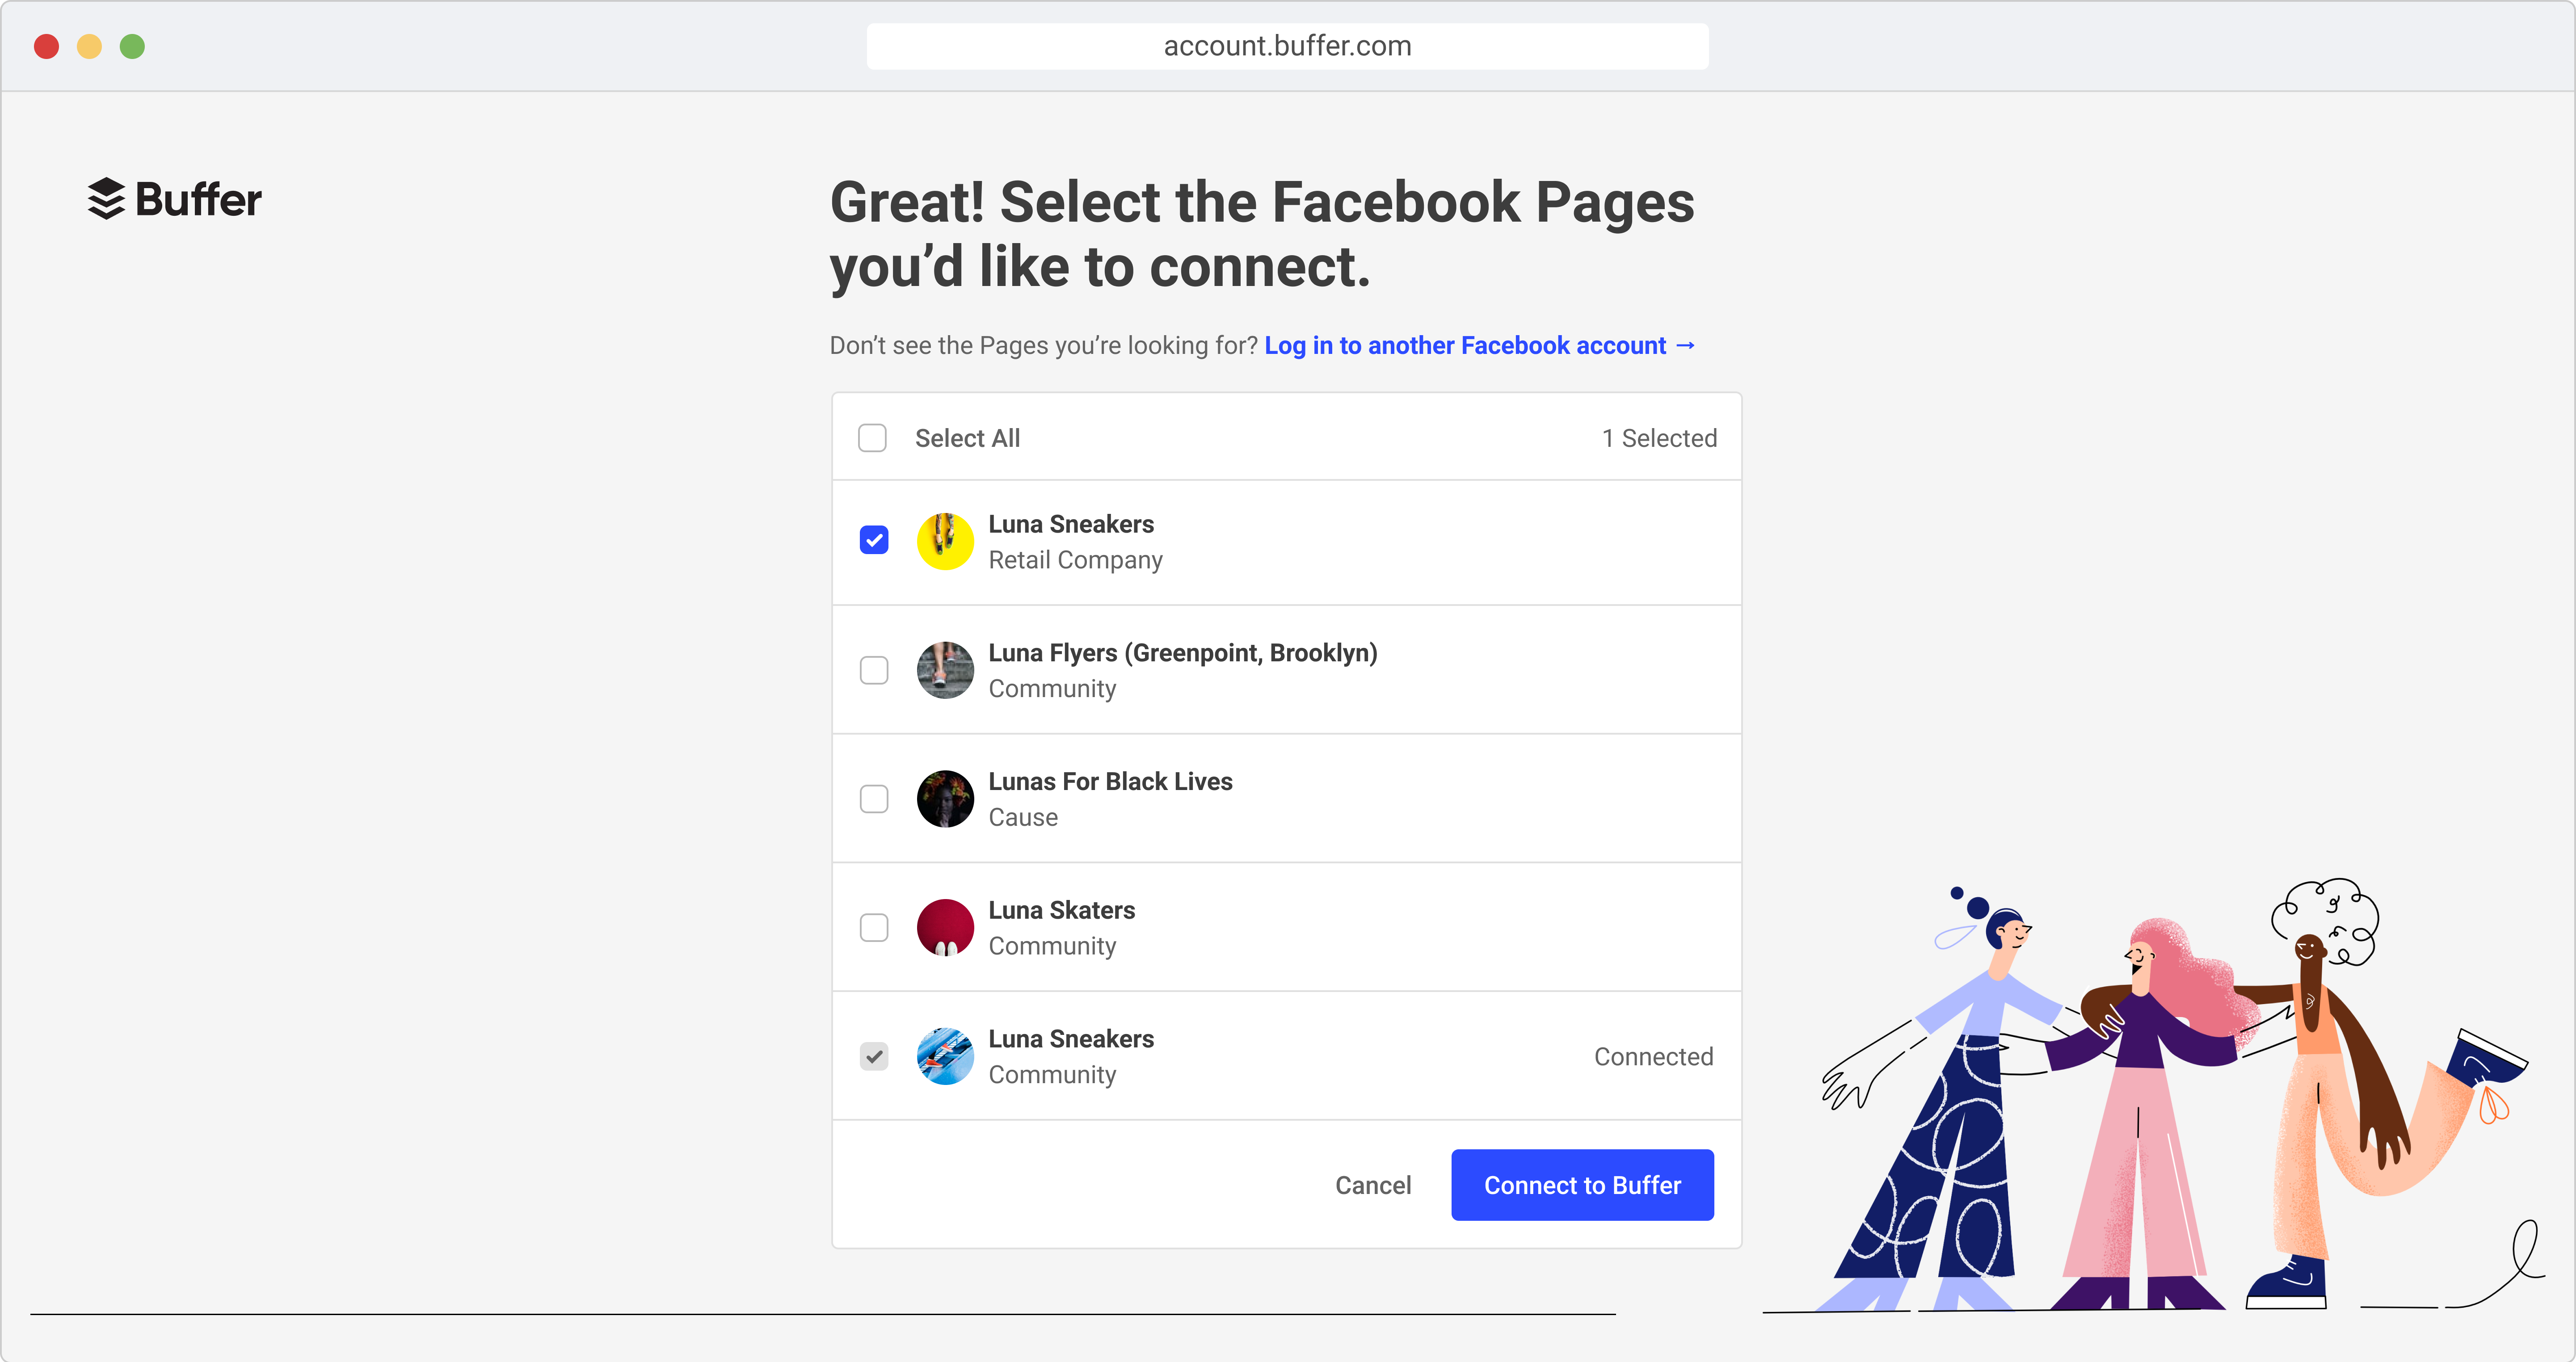 Mockup of screen to select Facebook Pages